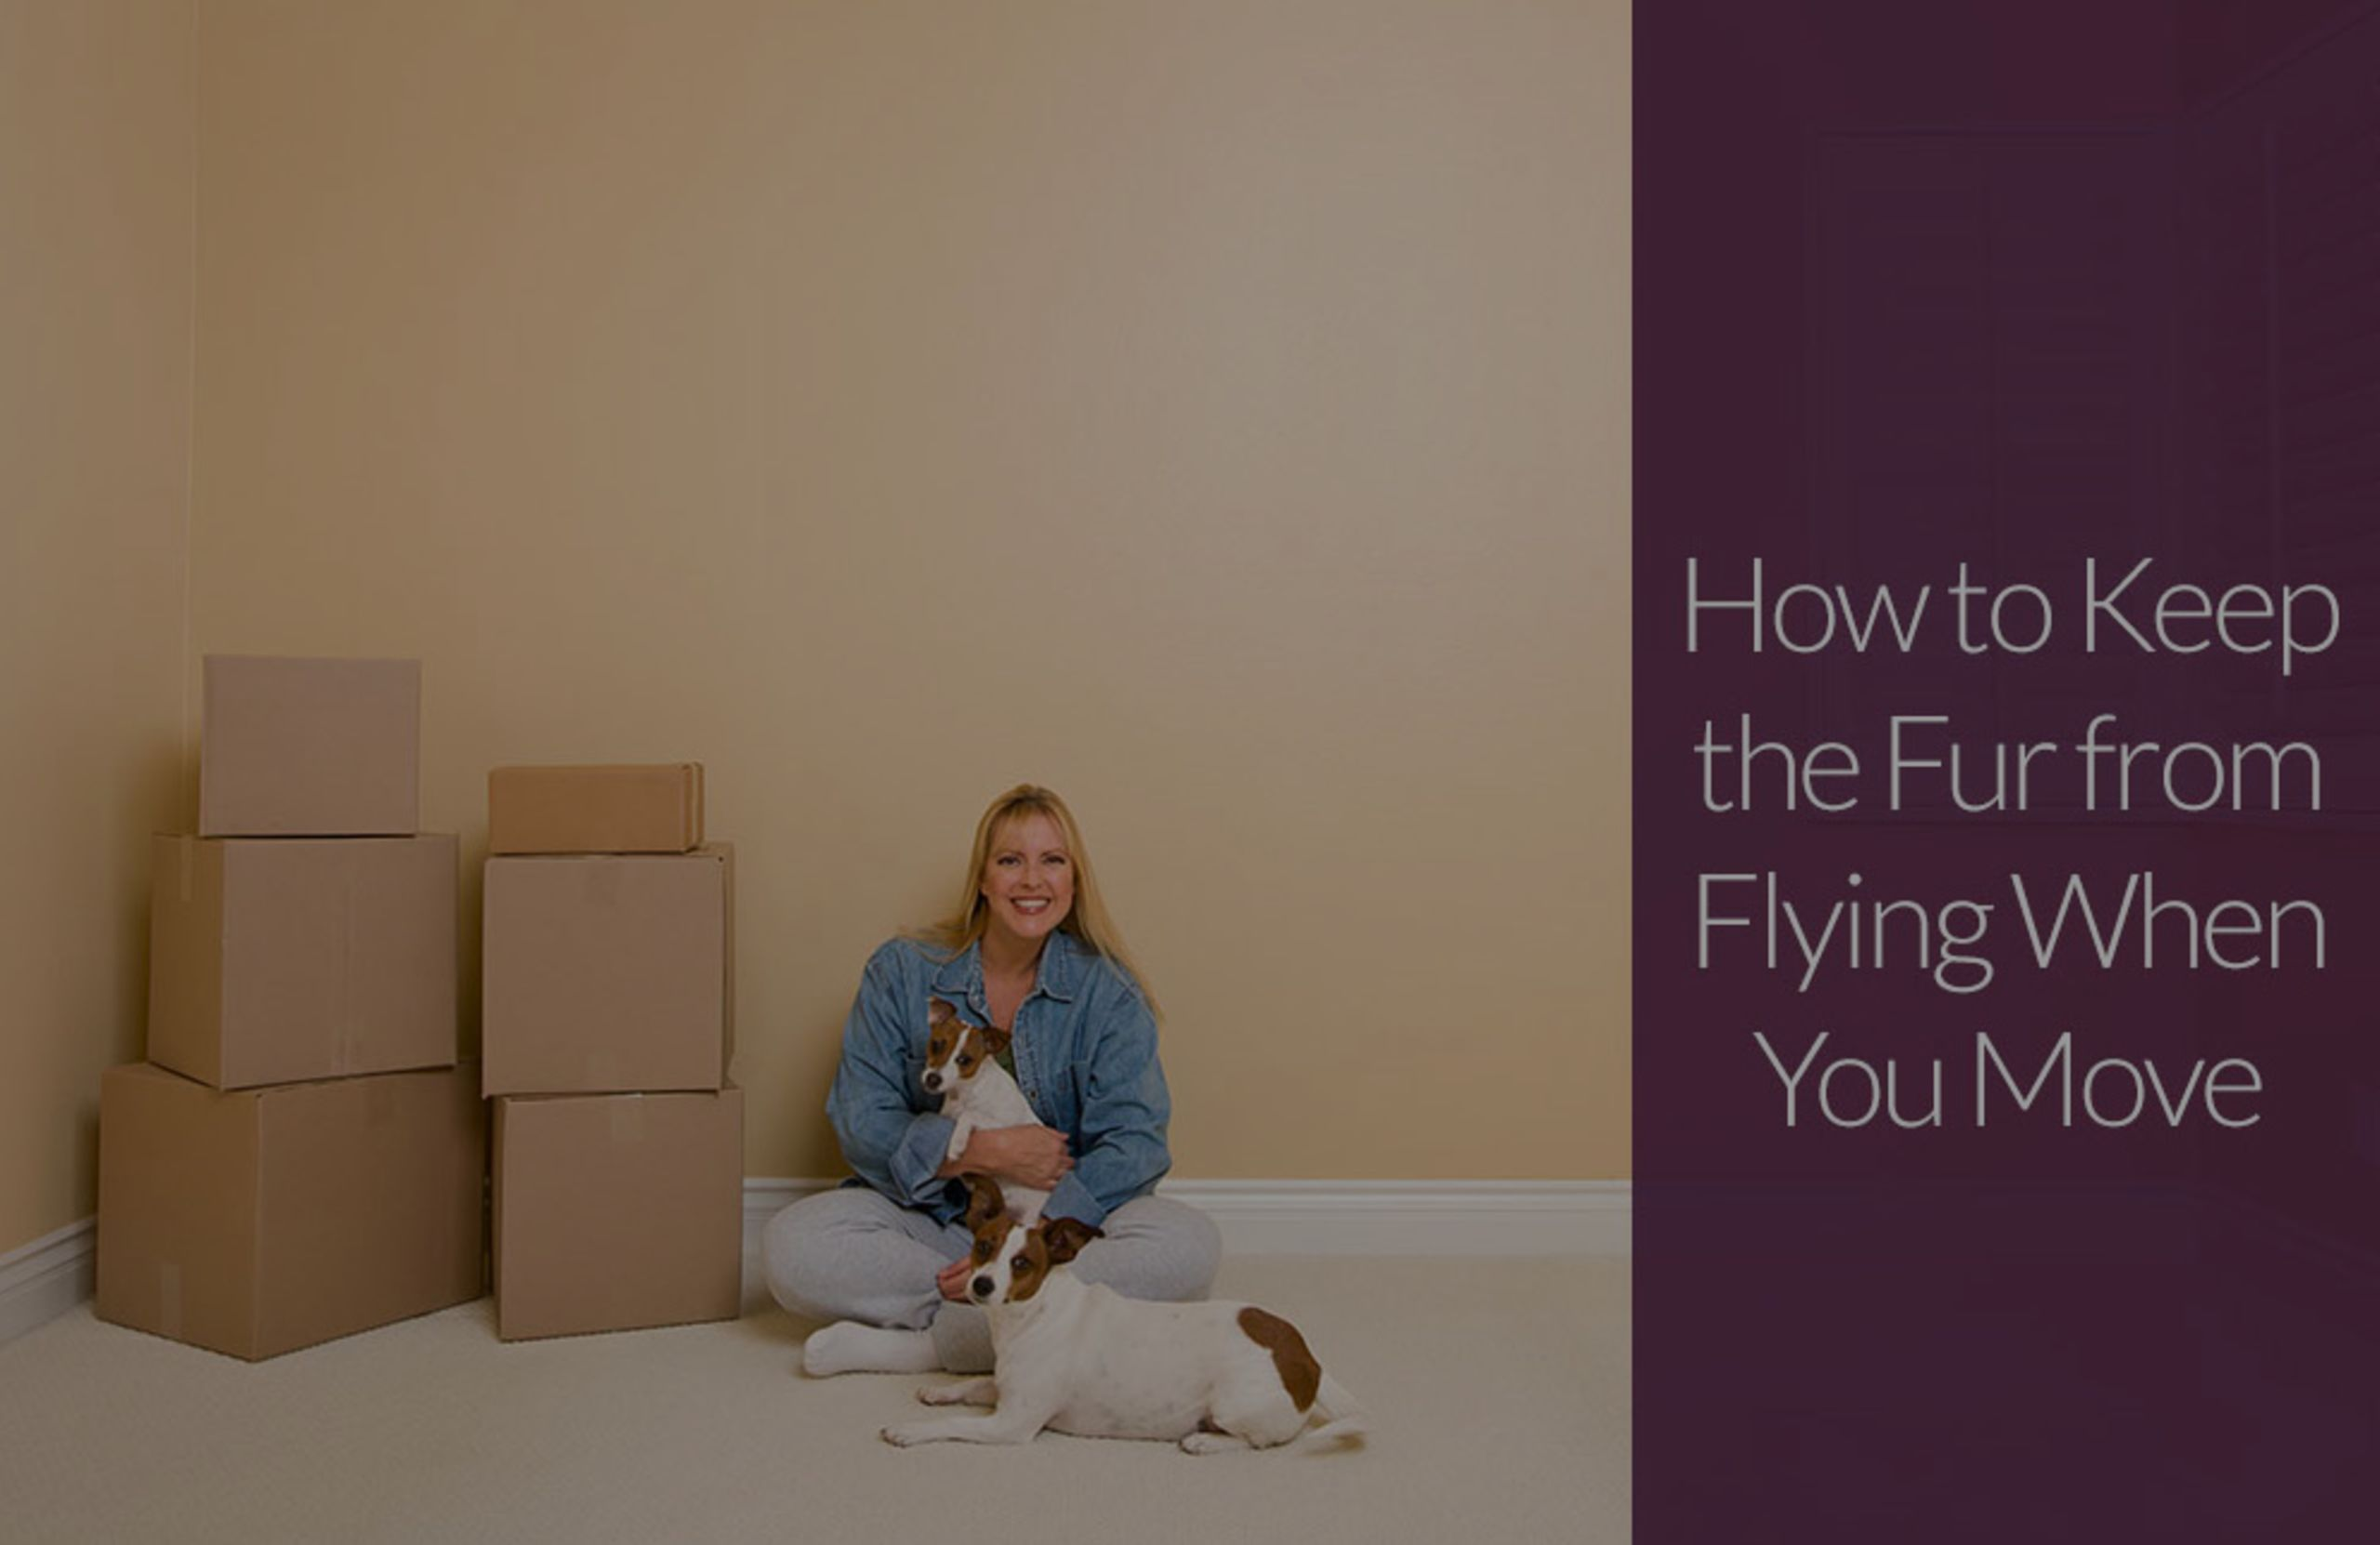 How to Keep the Fur from Flying When You Move